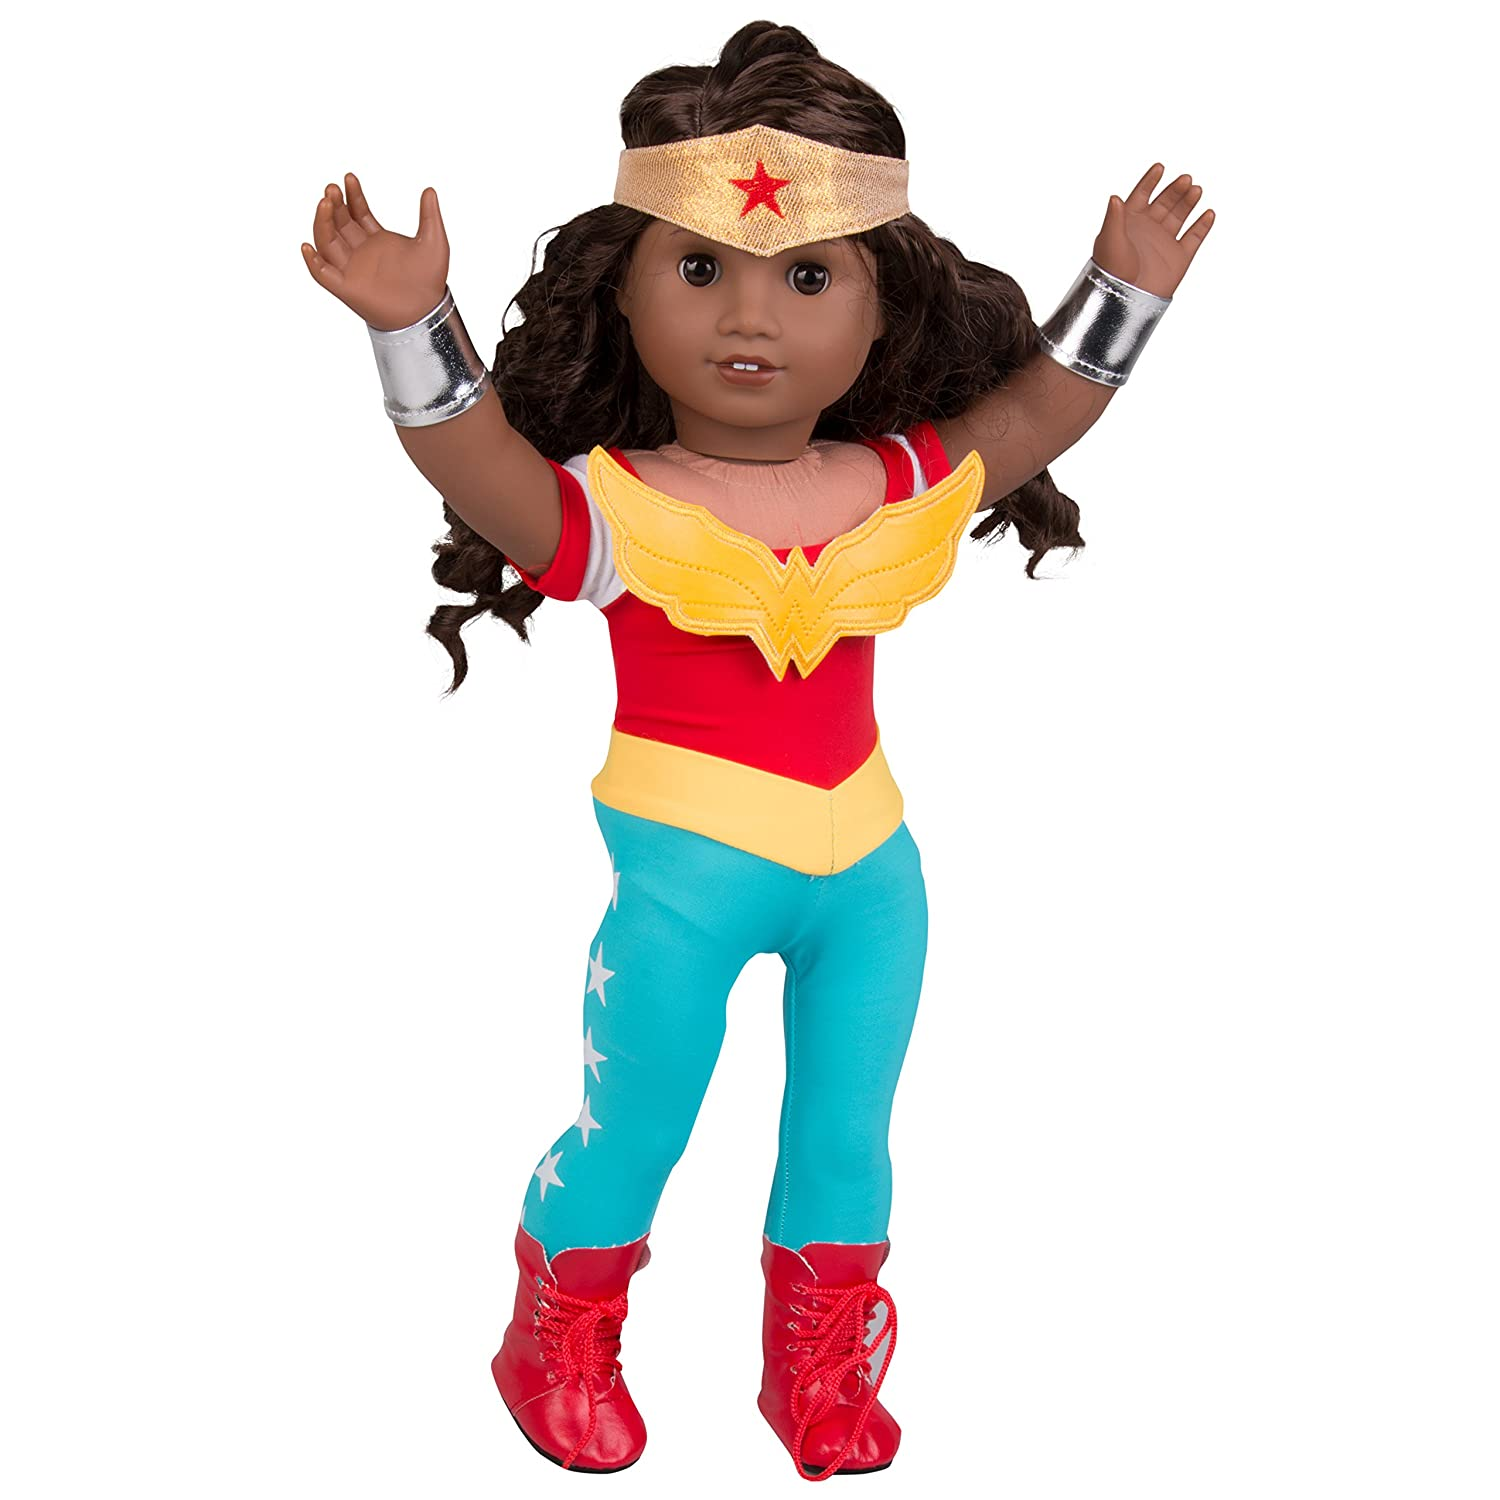 fcecfae2e44 Dress Along Dolly Wonder Woman Inspired Doll Outfit - 5pcs Superhero  Halloween Costume for American Girl and 18 Inches Doll